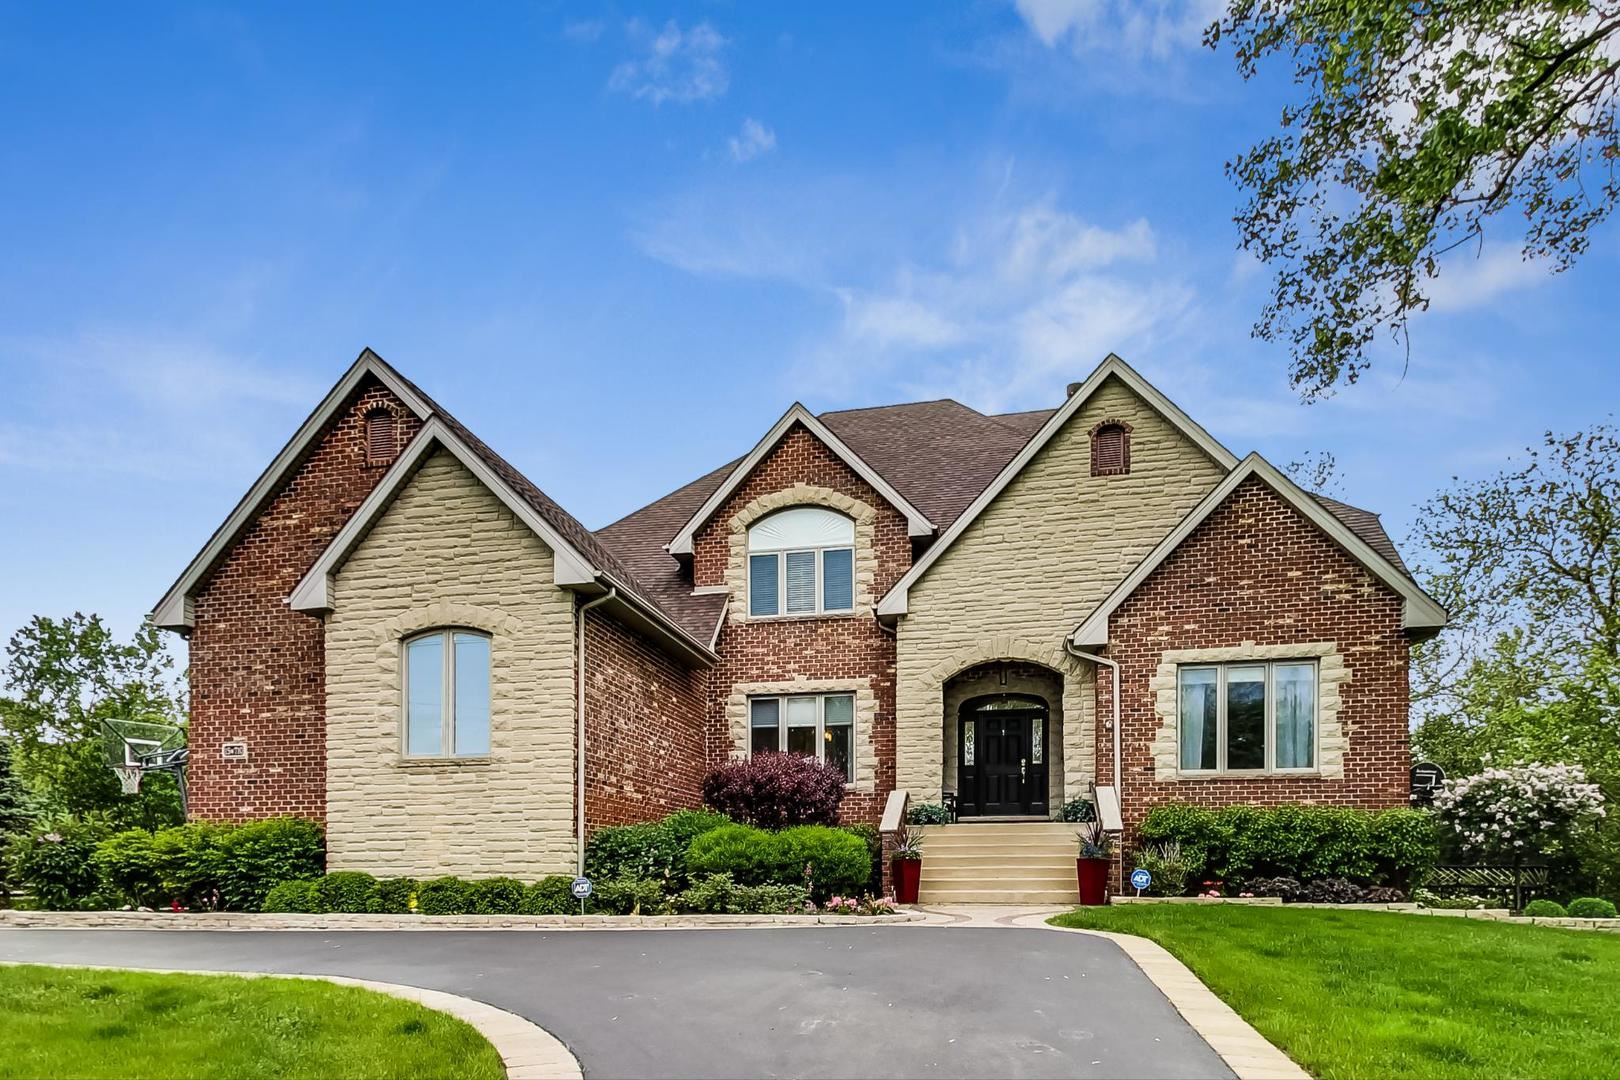 15W710 74TH Street, Burr Ridge, IL 60521 - #: 10763214